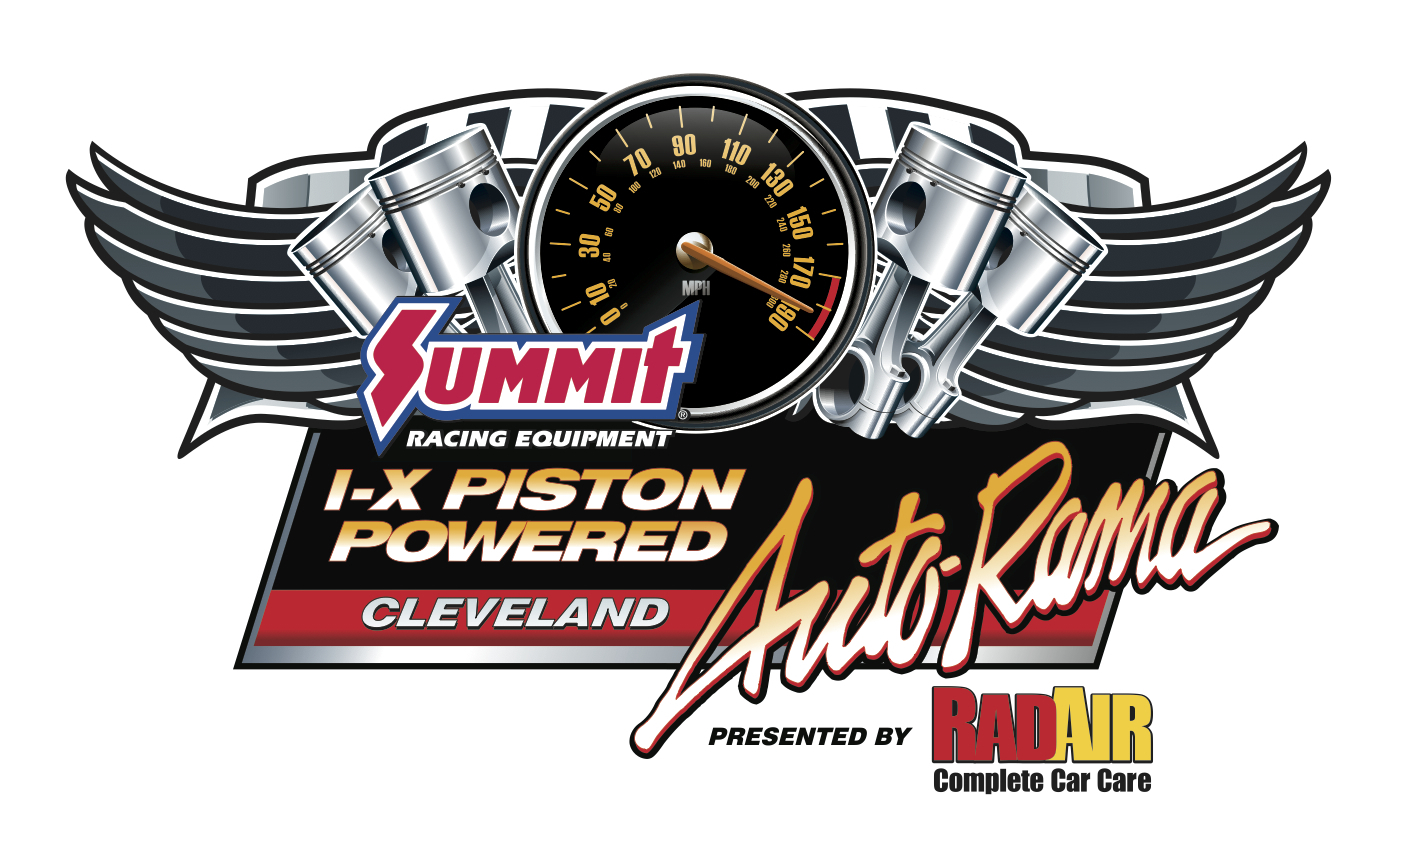 Discount Tire Hours Sunday >> Piston Powered Auto-Rama Tickets On Sale Now | Rad Air